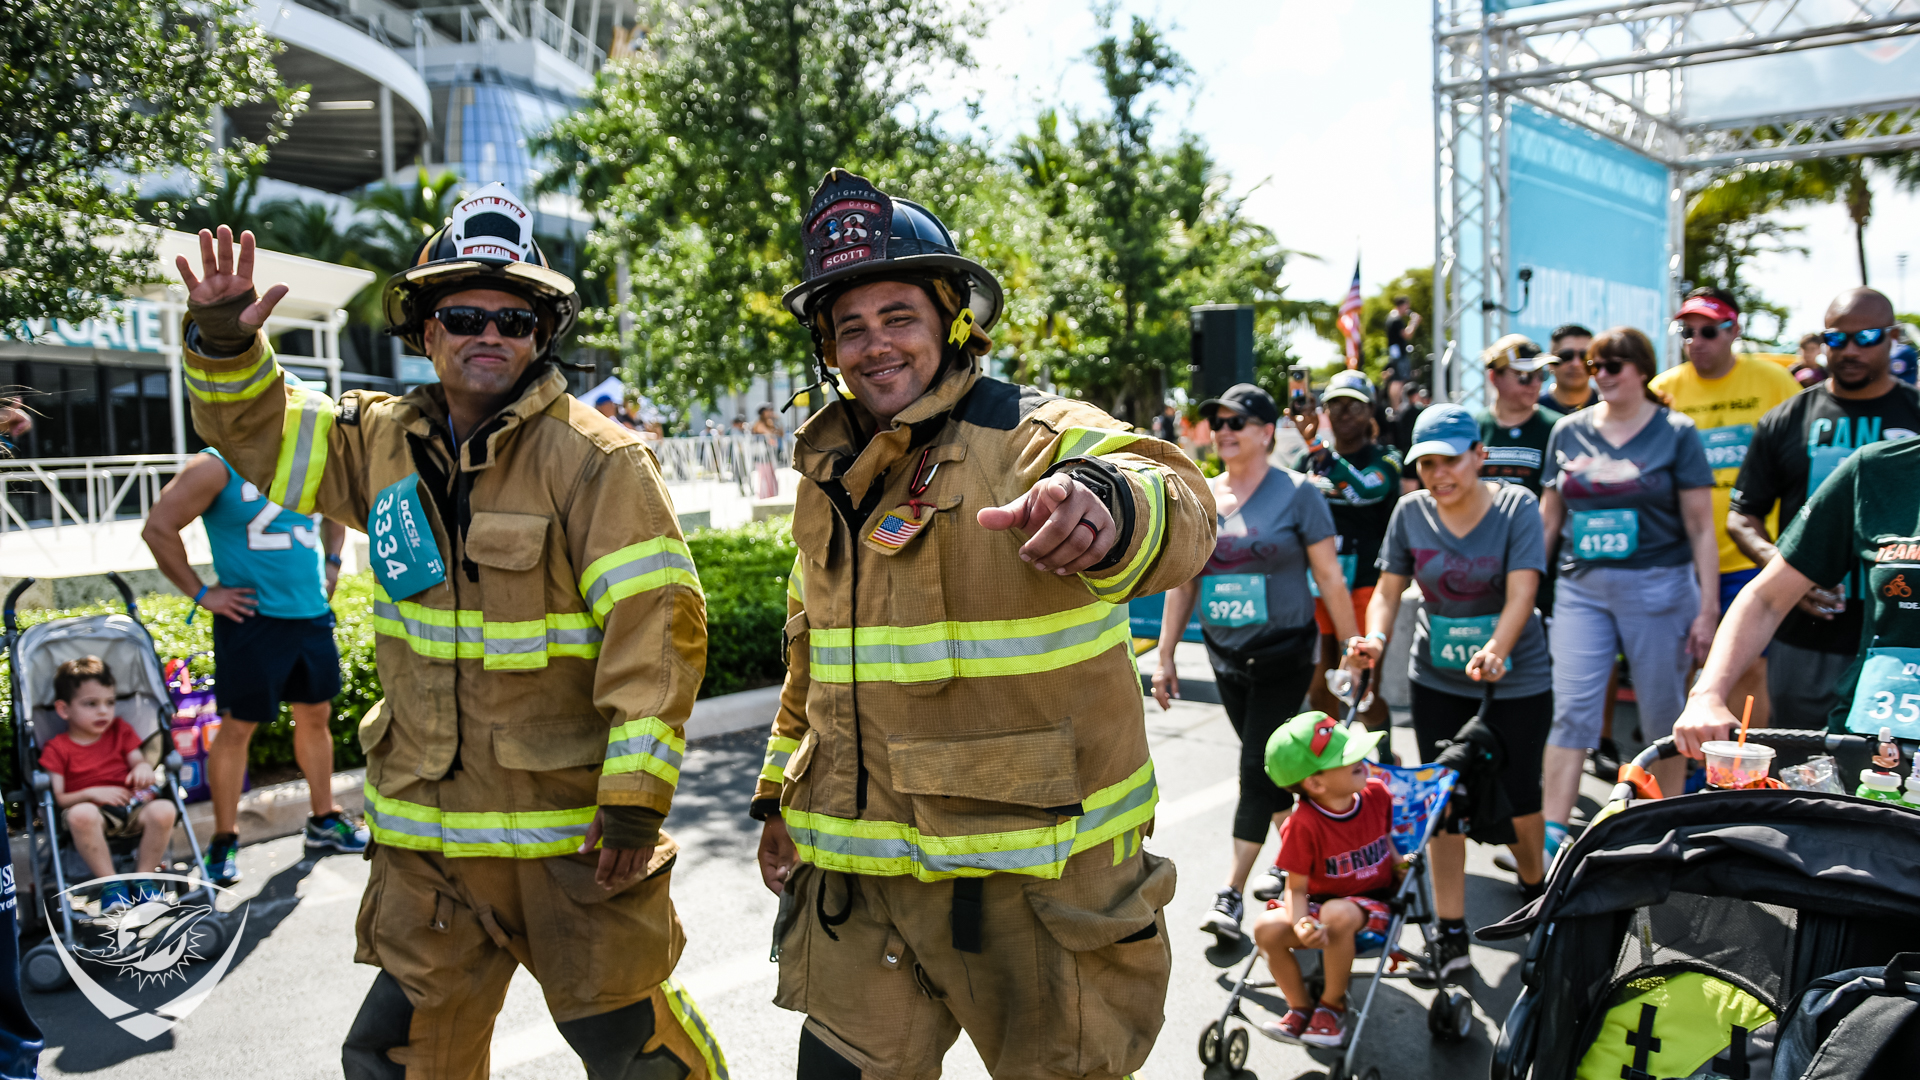 Firefighters at the DCC 5K